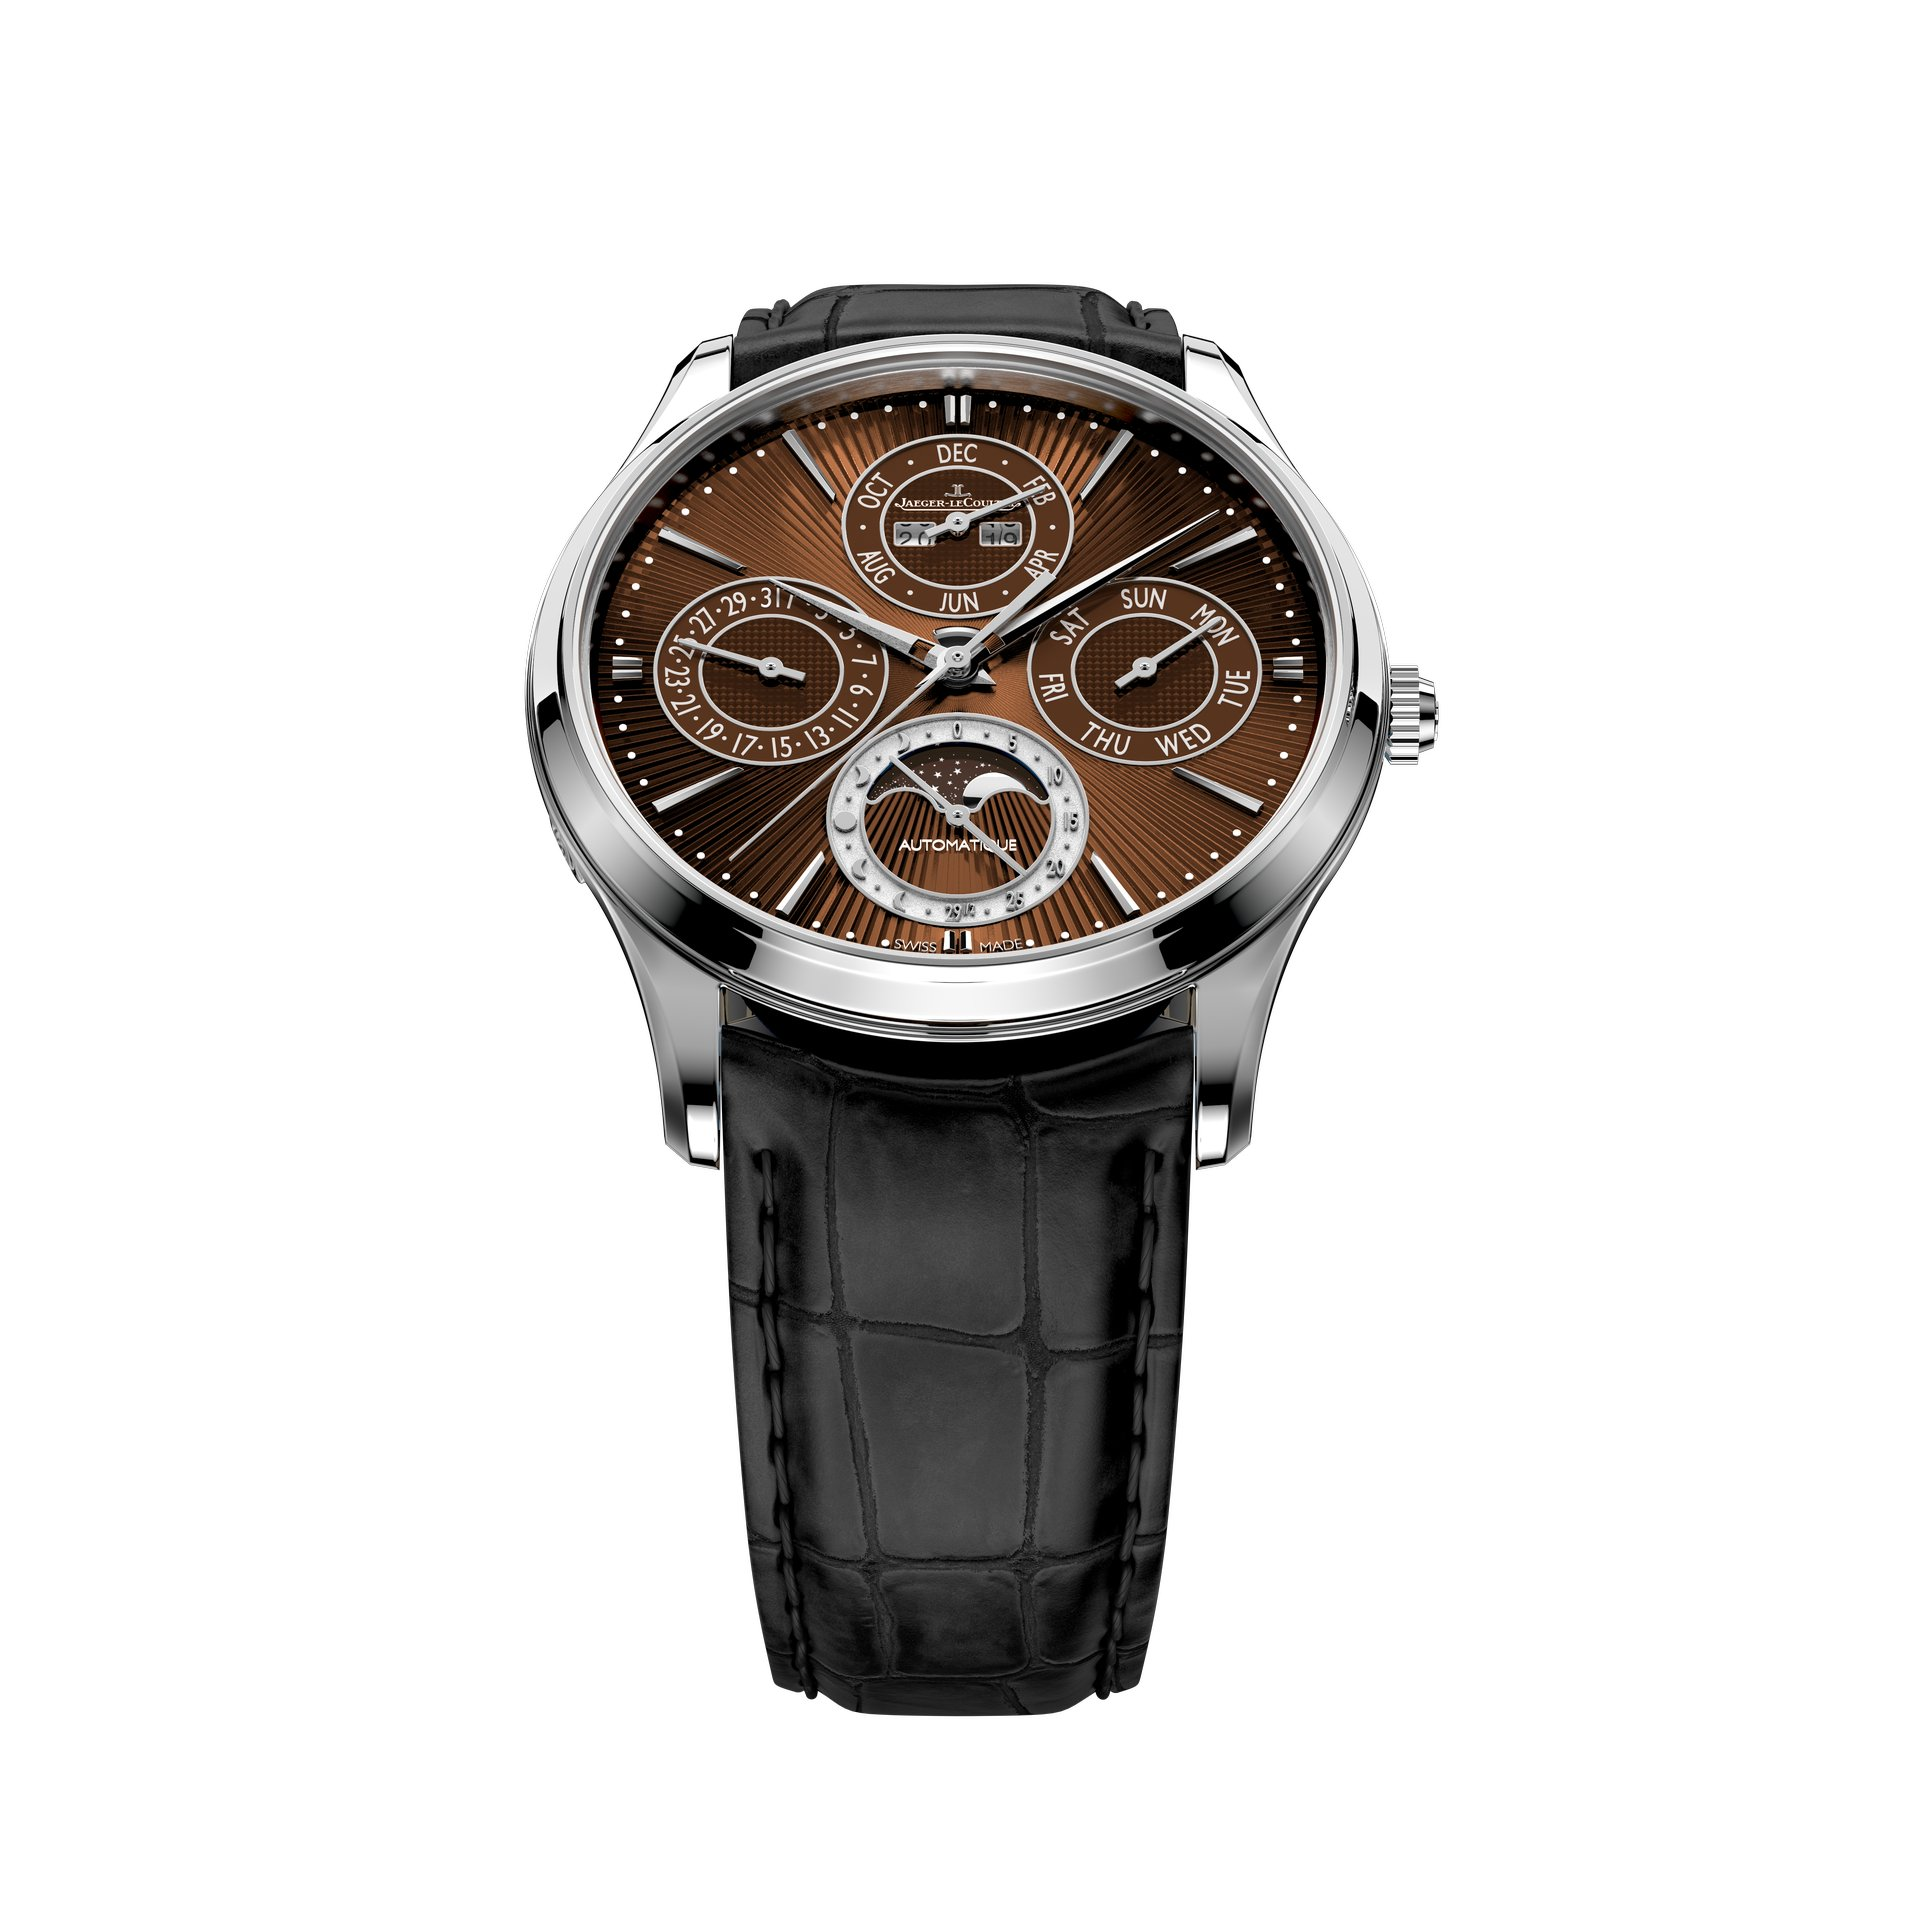 Jaeger-LeCoultre Master Ultra Thin Perpetual Enamel Chestnut Only Watch